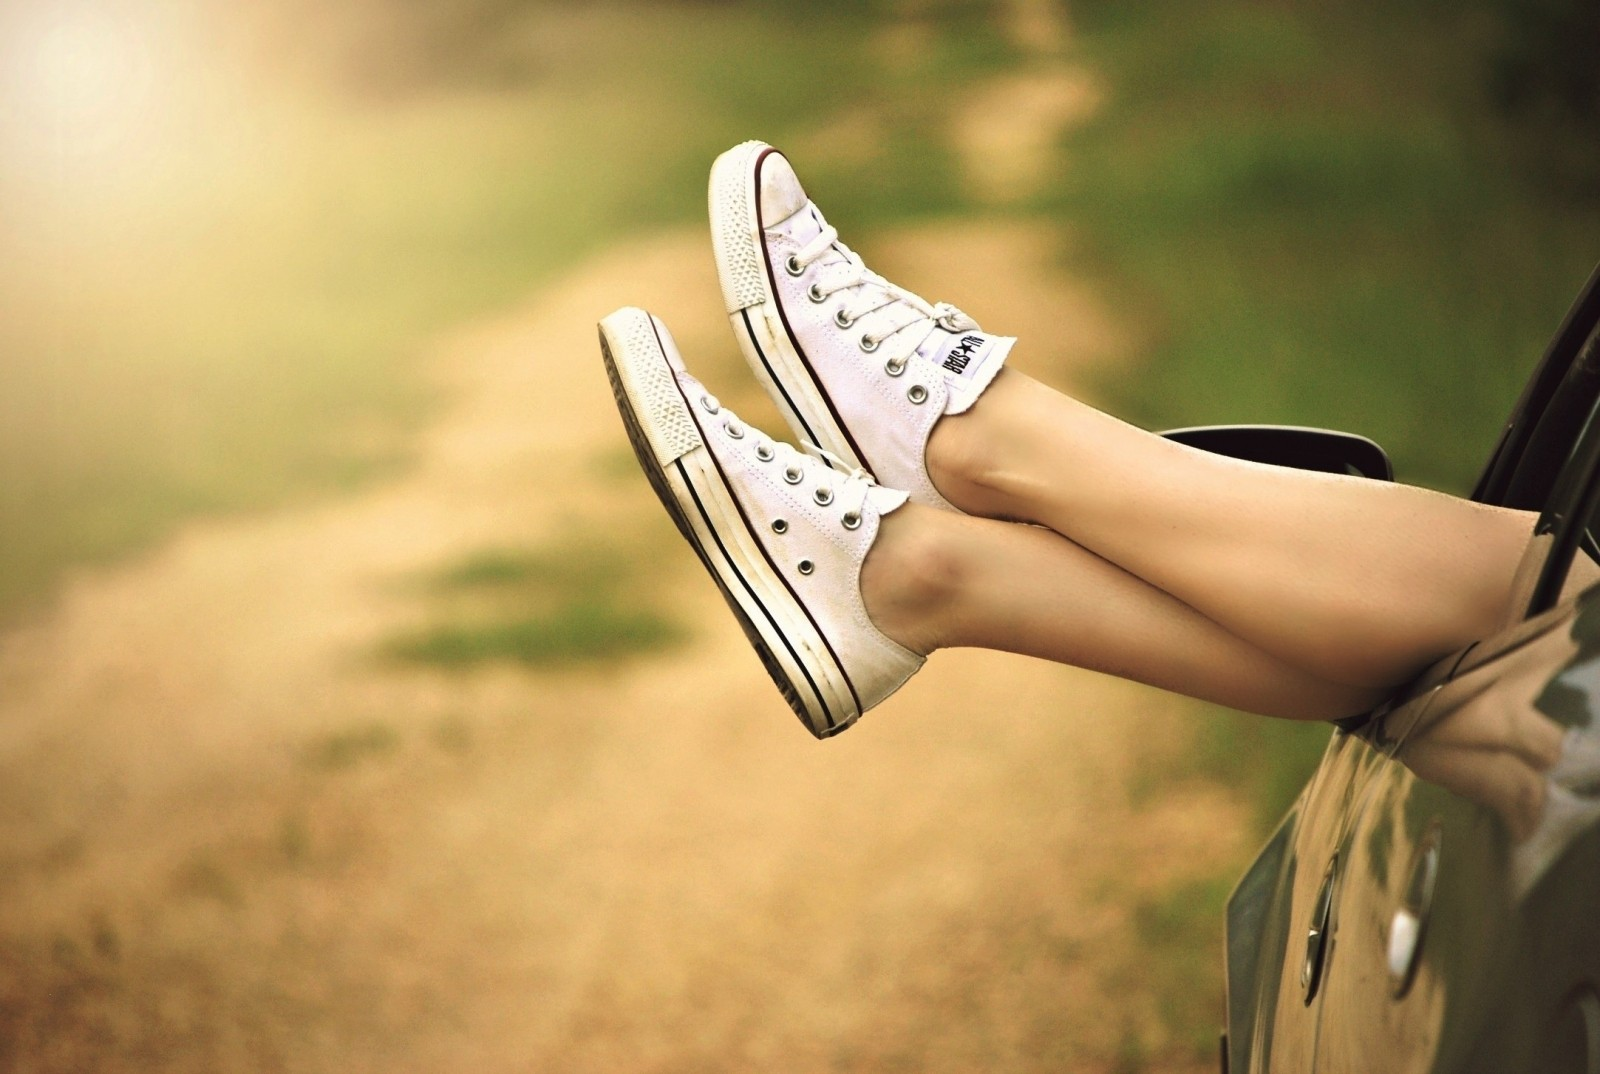 woman-in-canvas-shoes-relaxing-in-car-on-dirt-road